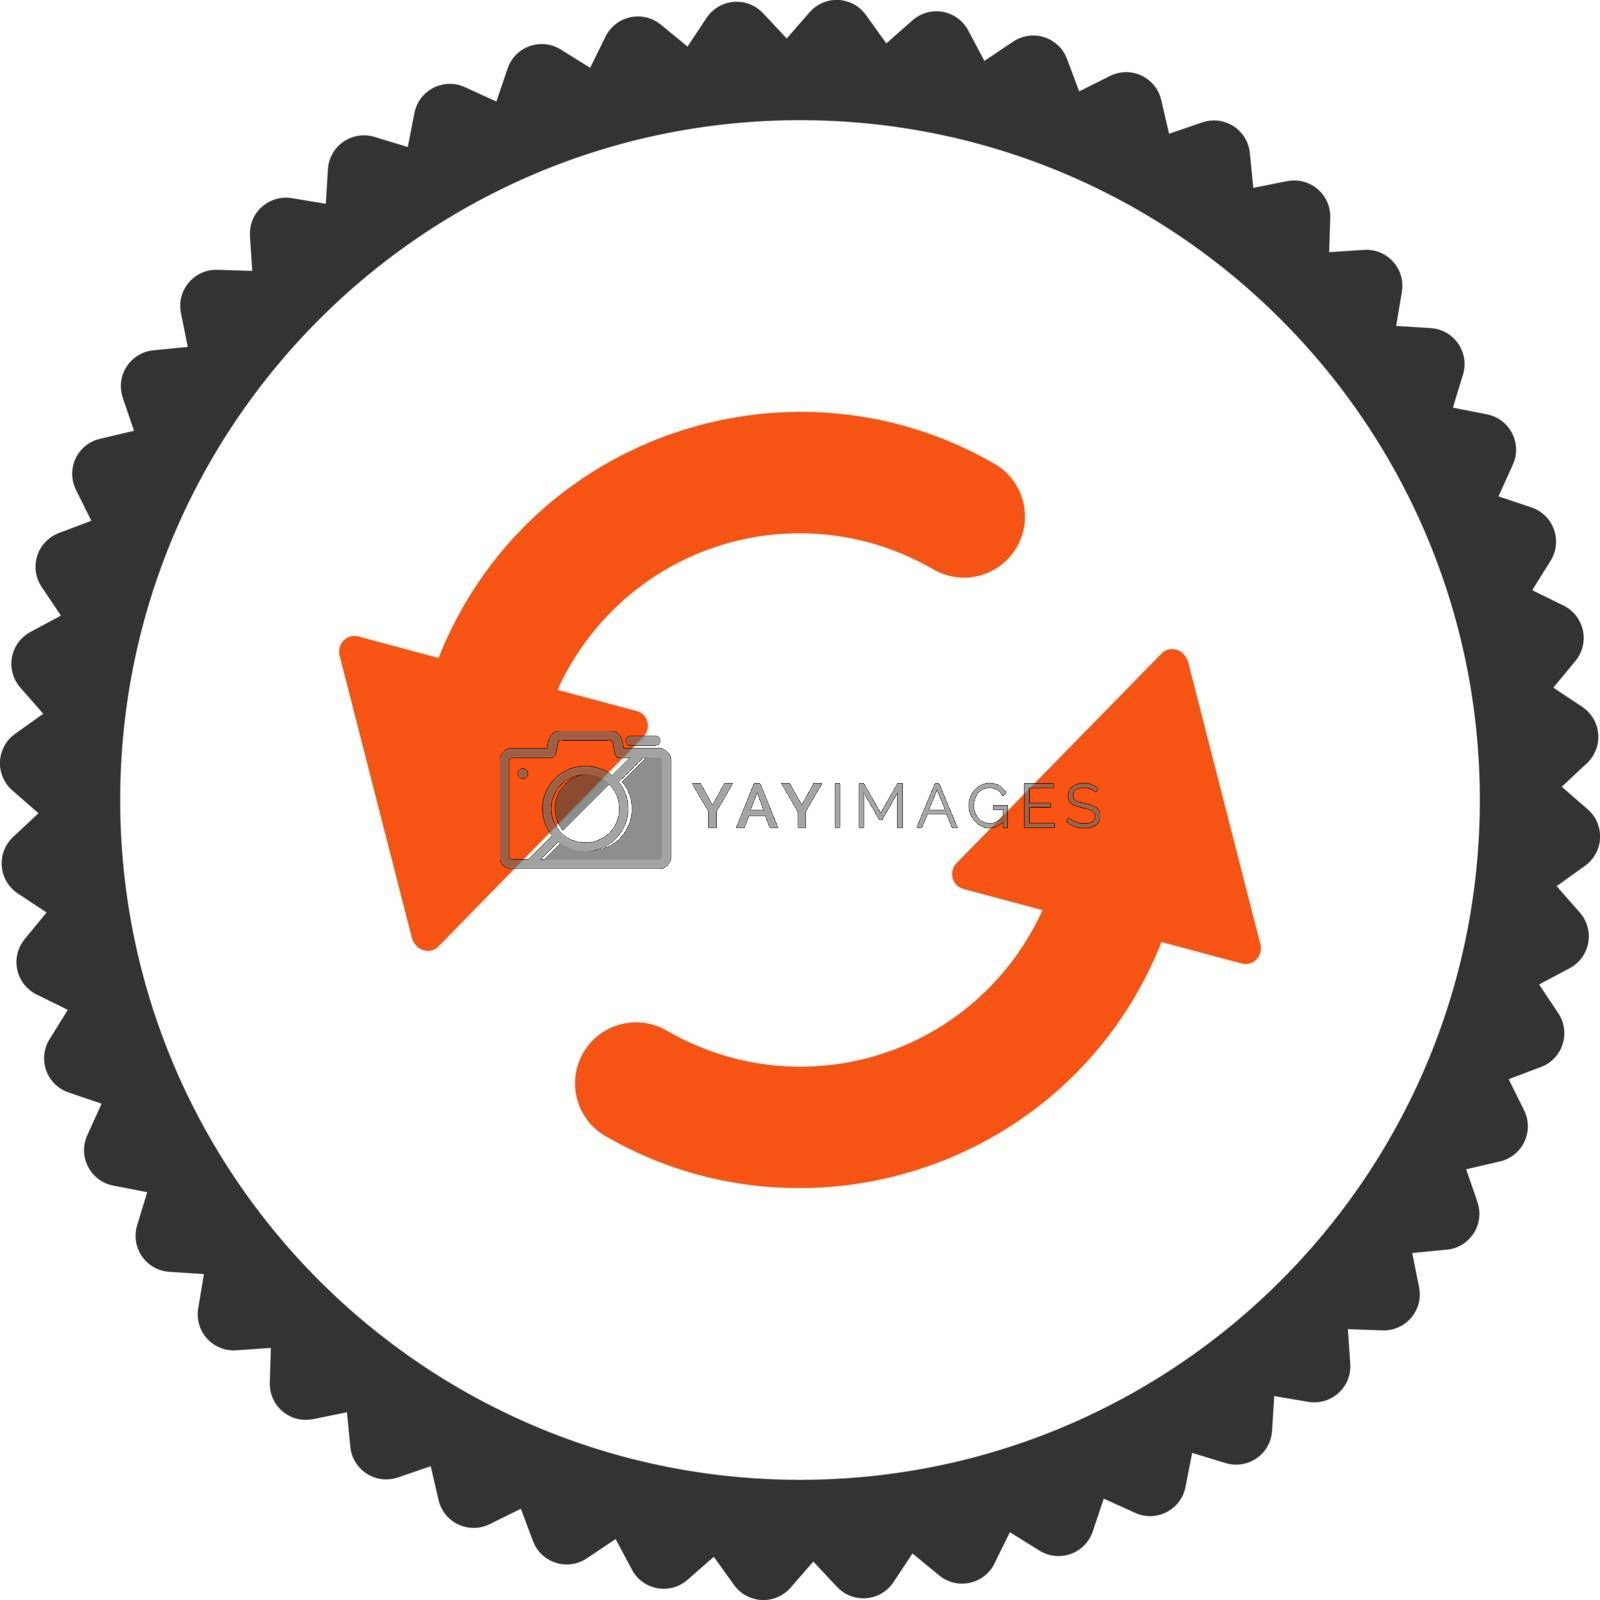 Refresh Ccw flat orange and gray colors round stamp icon by Aha-Soft